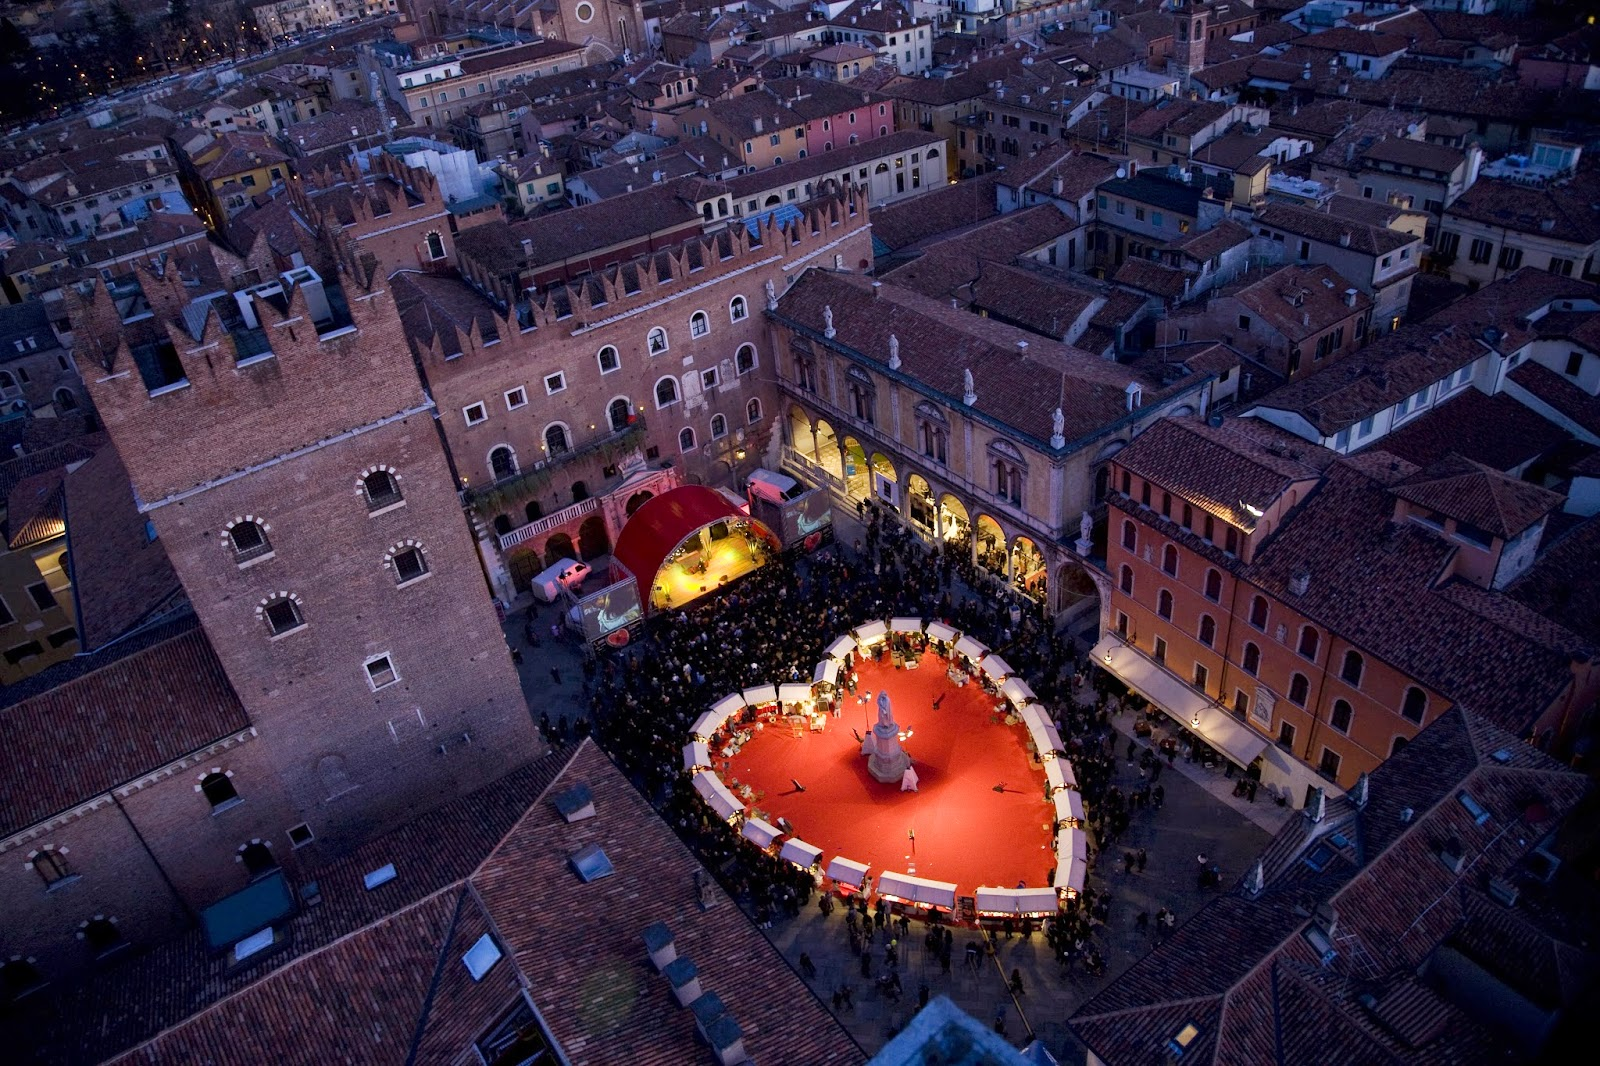 Valentine's Day in Verona, the city of Romeo and Juliet